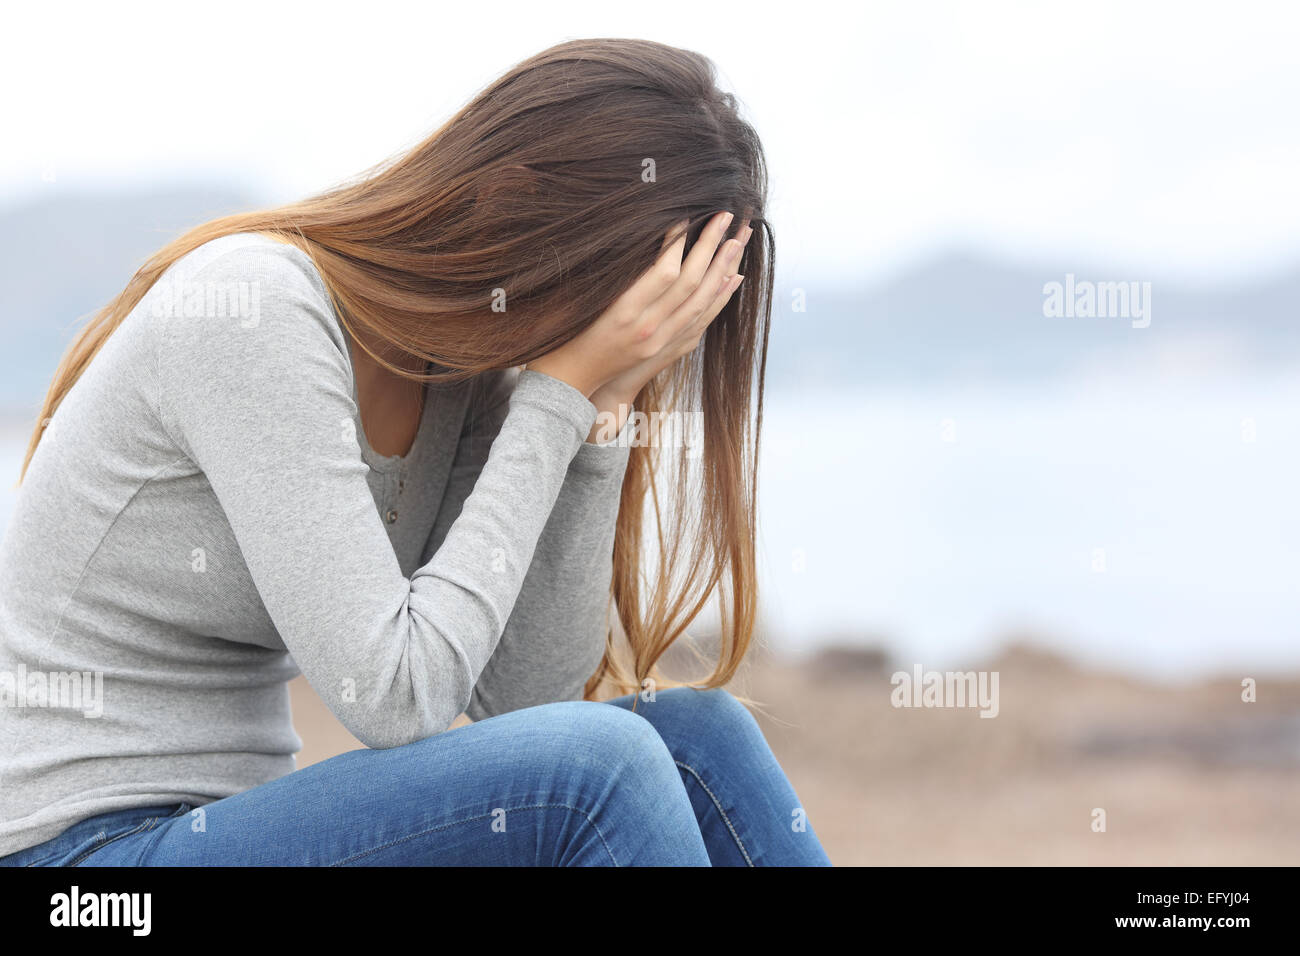 Worried teenager woman covering her face with hands on the beach in winter Stock Photo